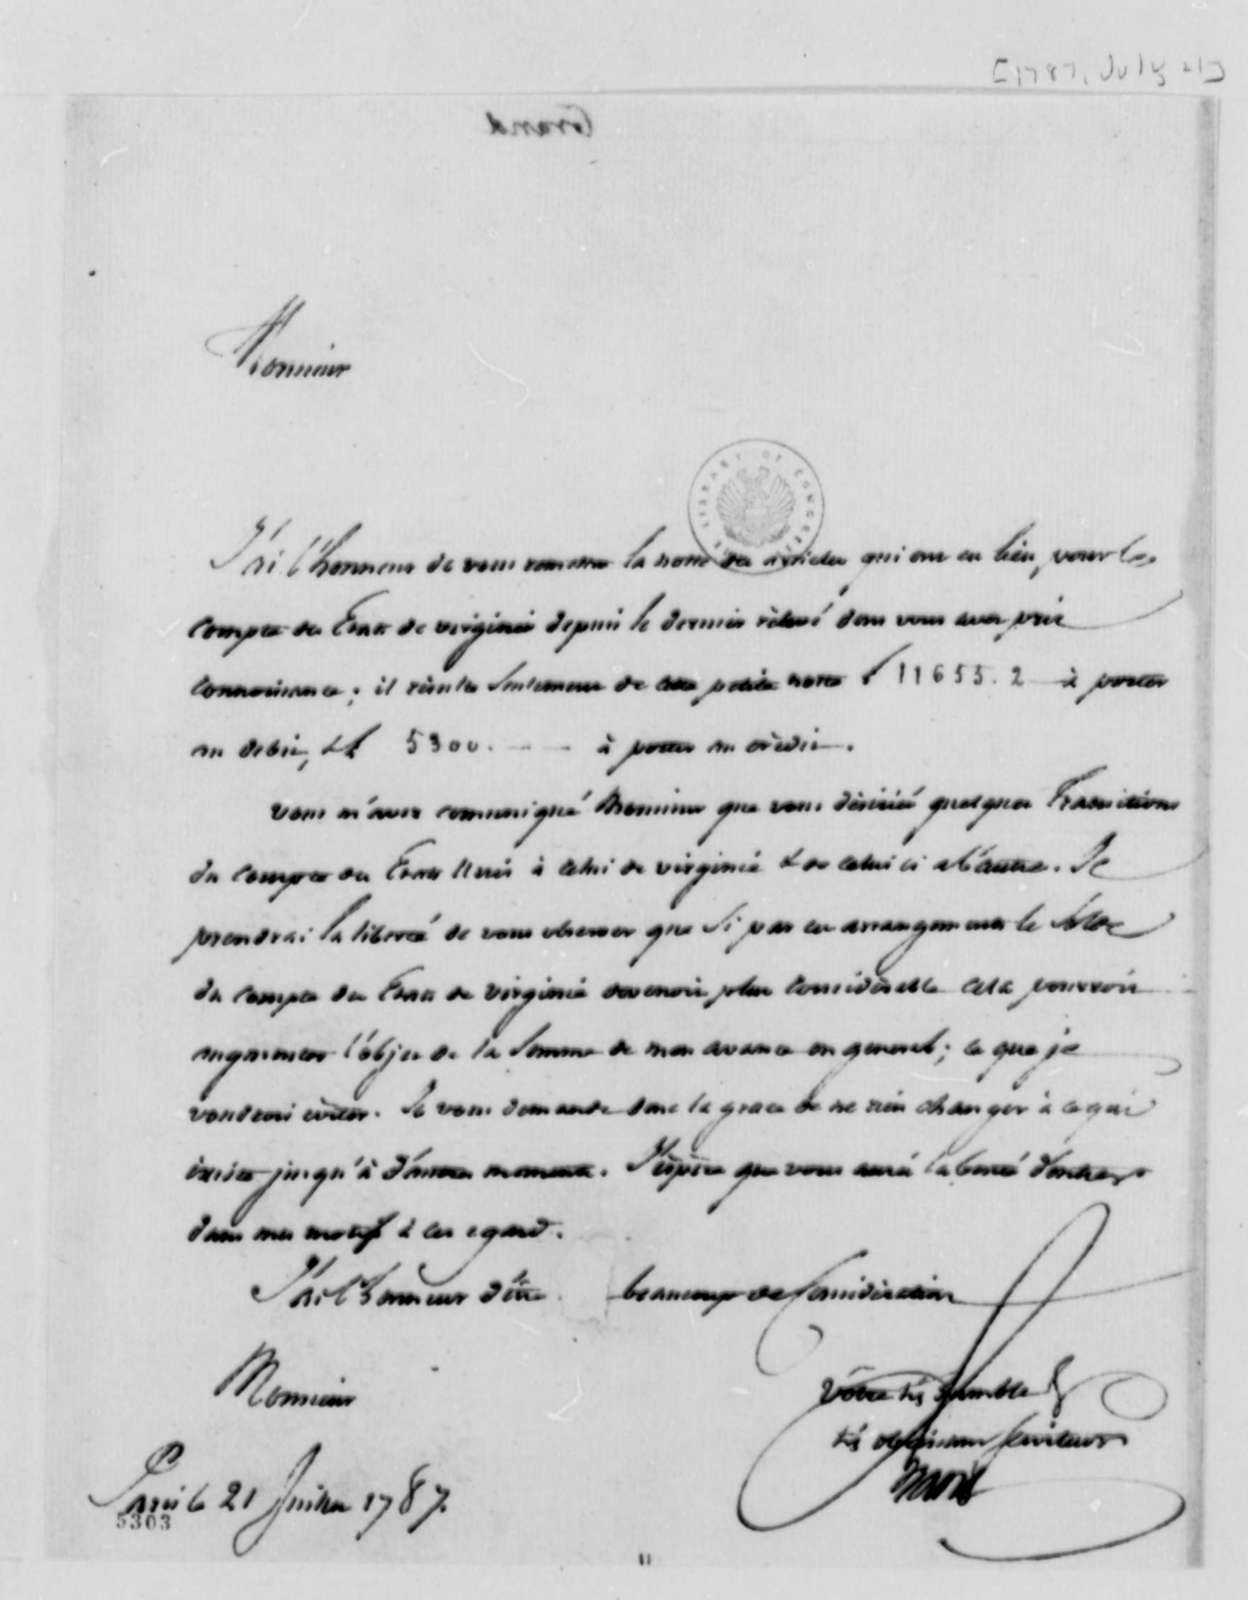 Ferdinand Grand to Thomas Jefferson, July 21, 1787, in French